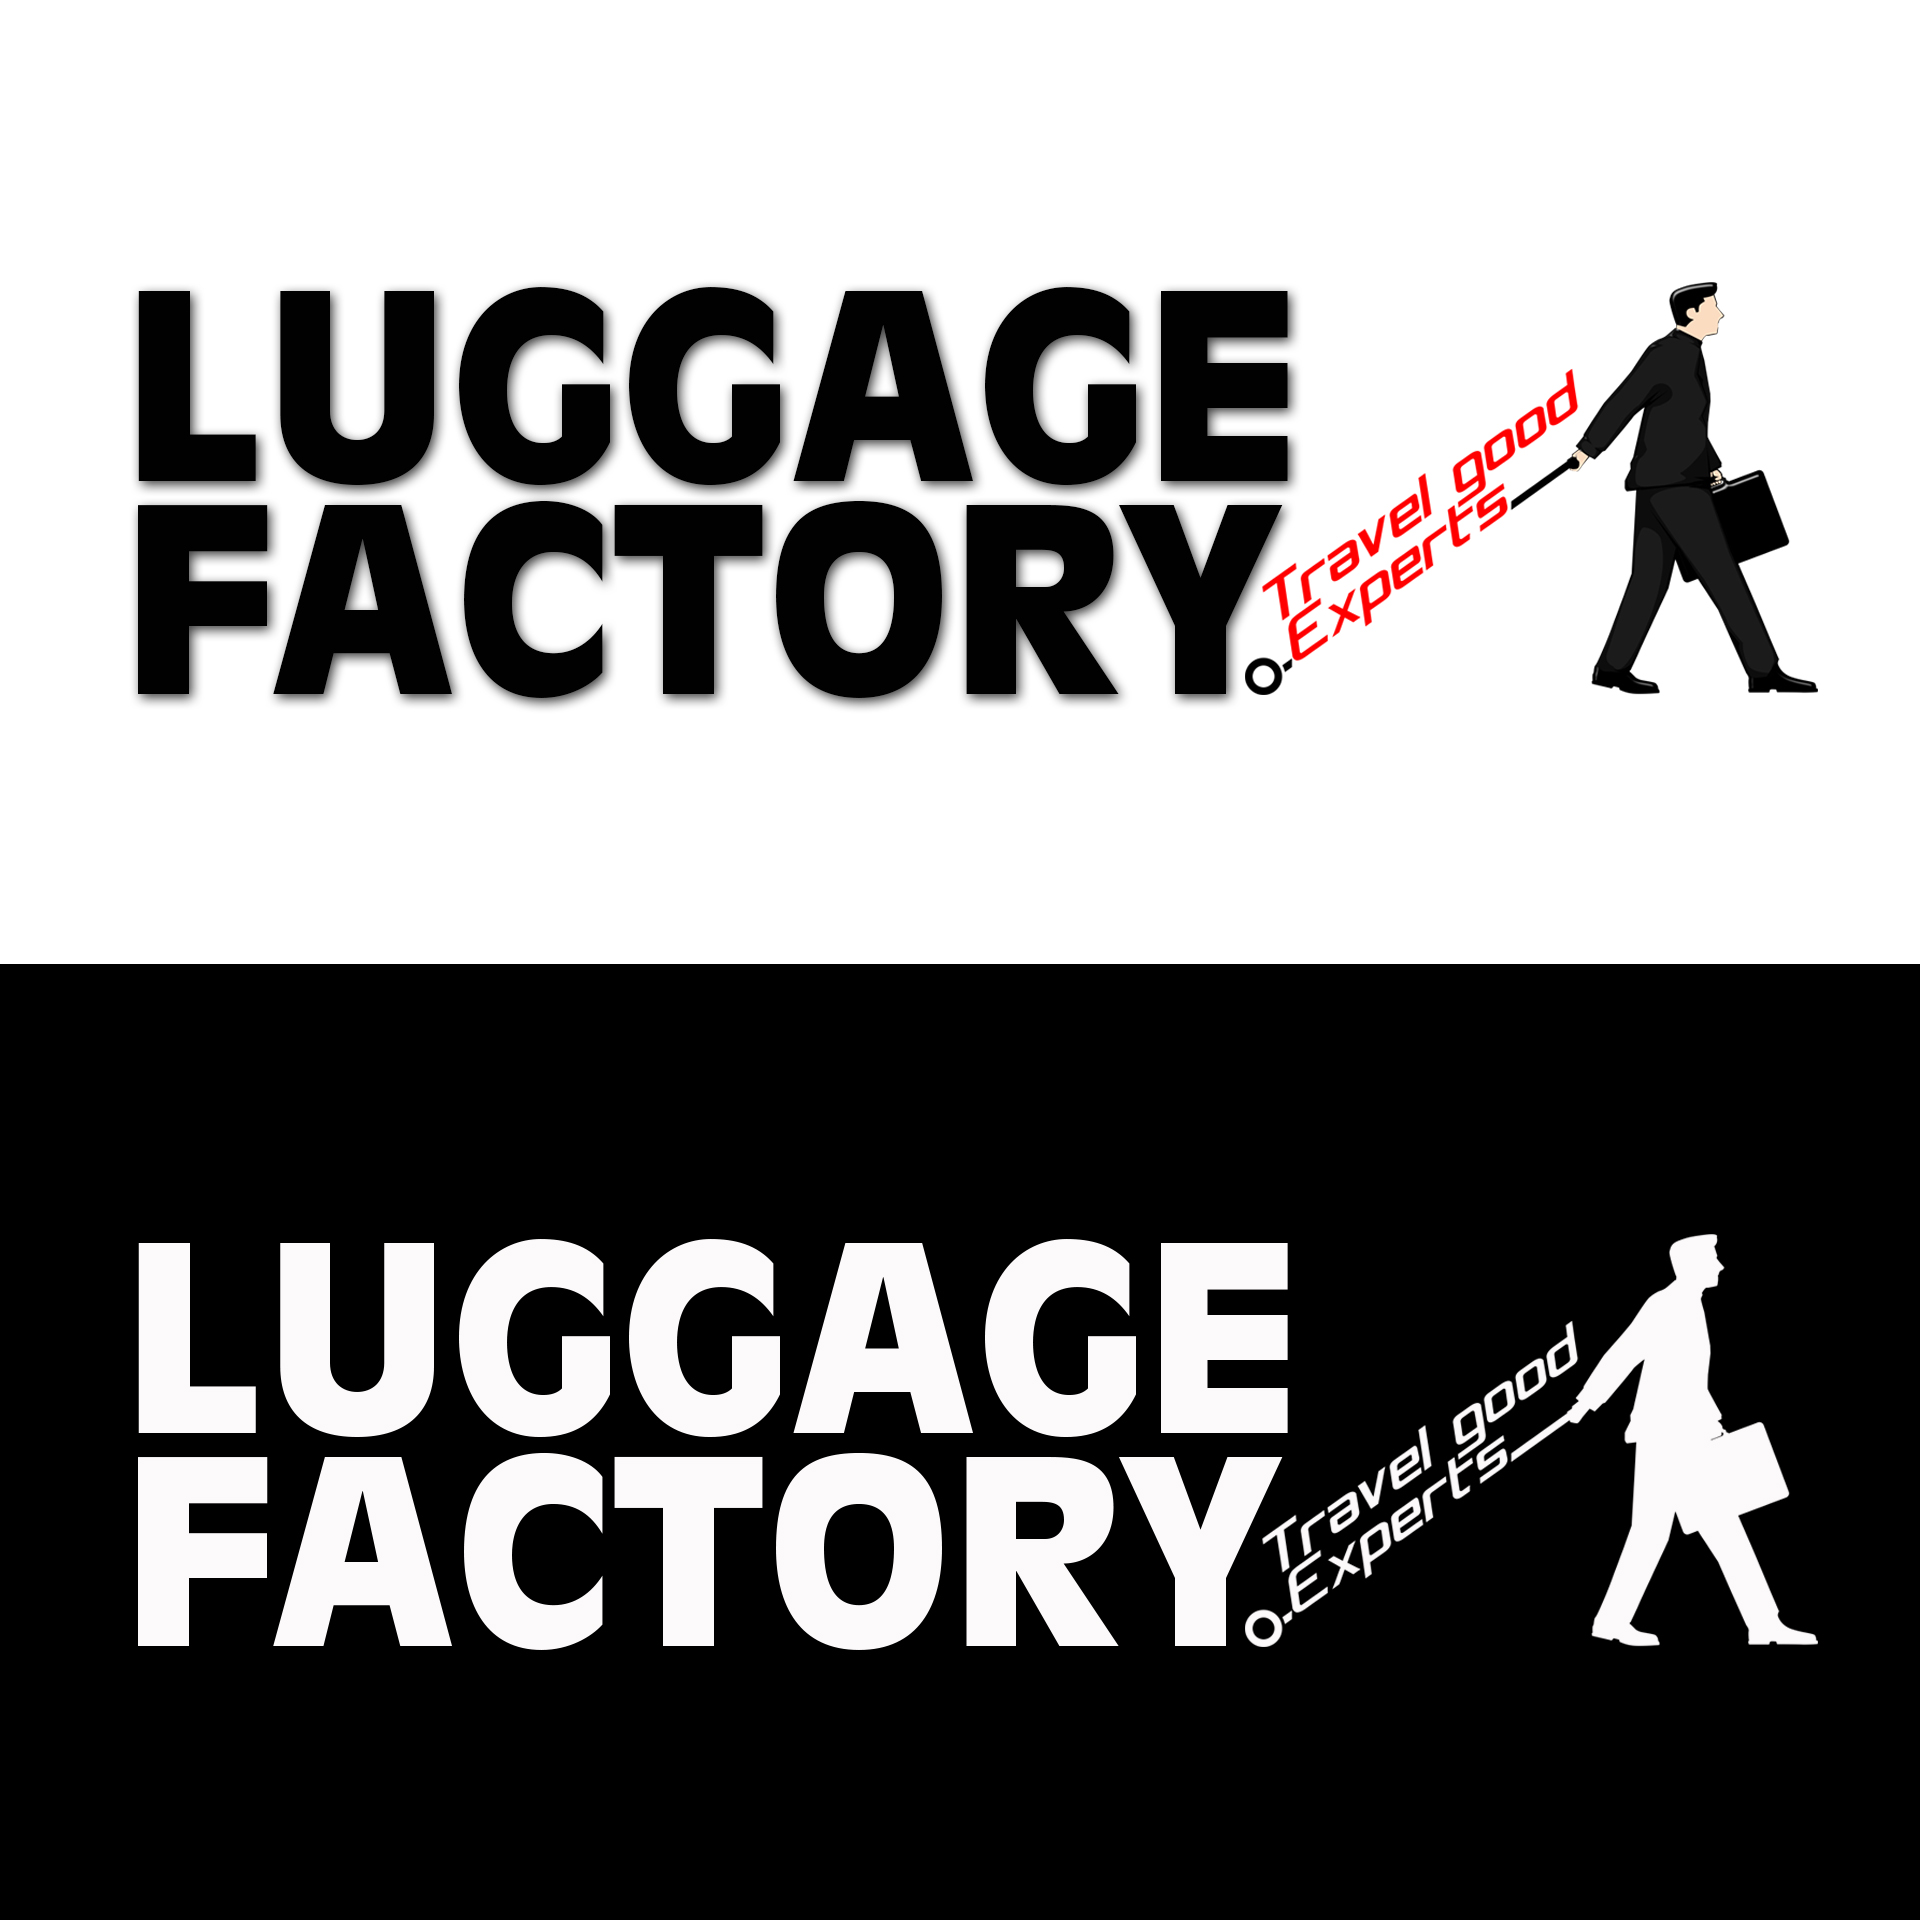 Logo Design by chAnDOS - Entry No. 104 in the Logo Design Contest Creative Logo Design for Luggage Factory.